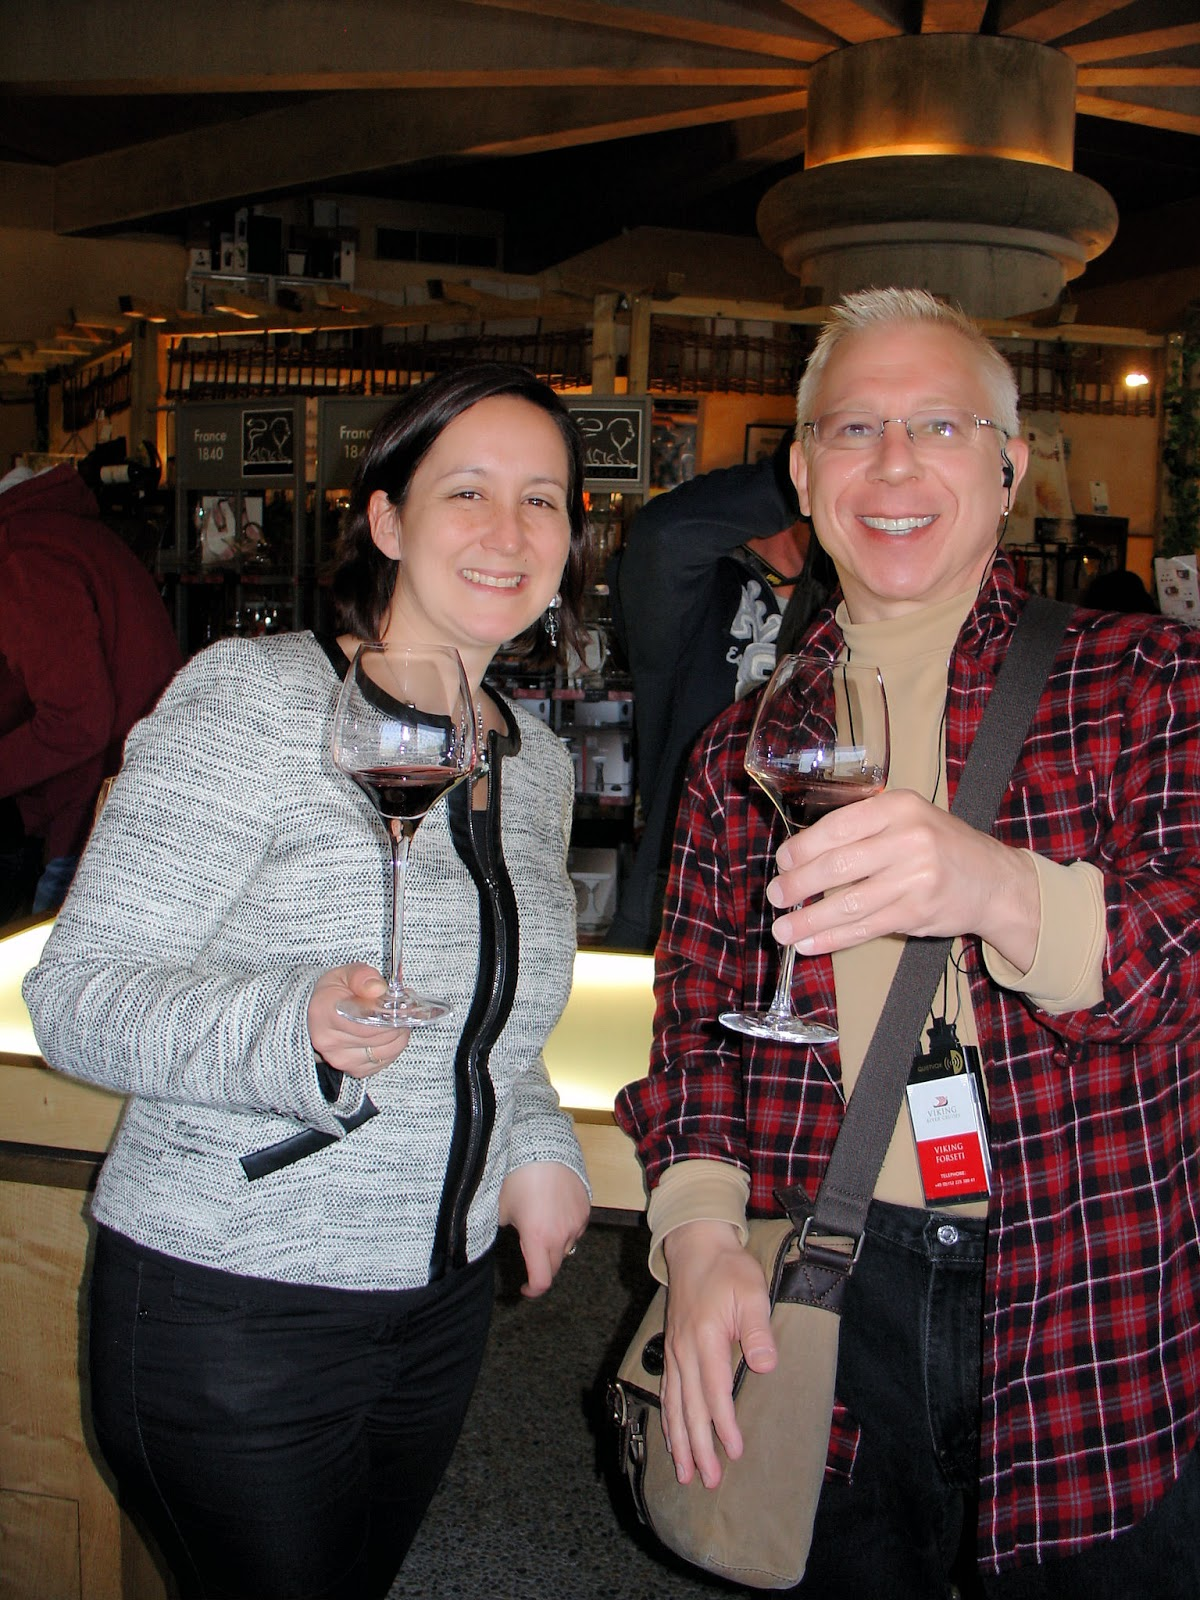 At the end of the tour, we tasted the chateau's three vintages. Here I am with our guide, Lætitia Guix de Pinos.